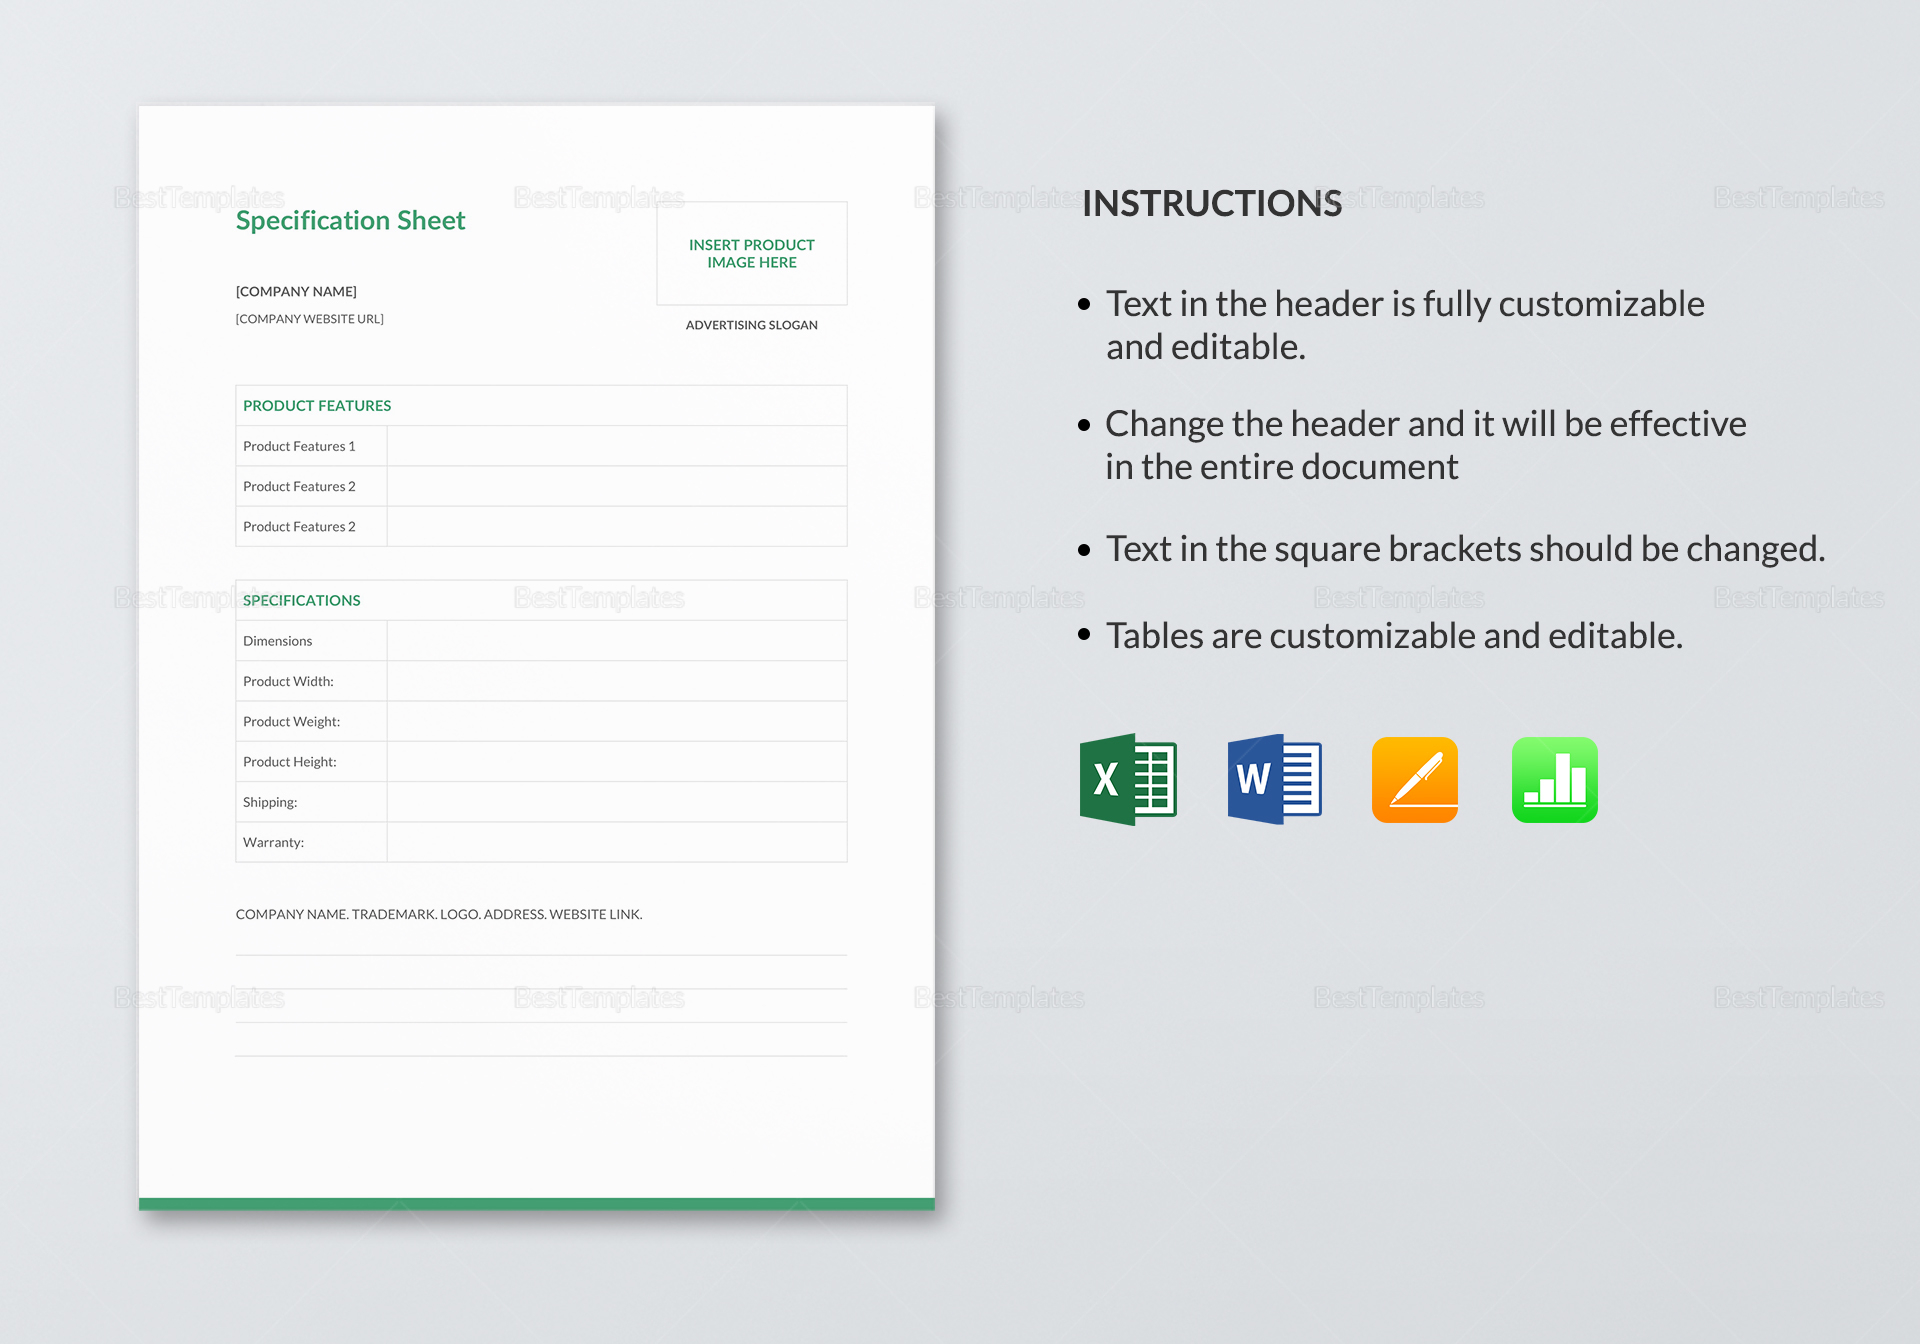 Sample Specification Sheet Template